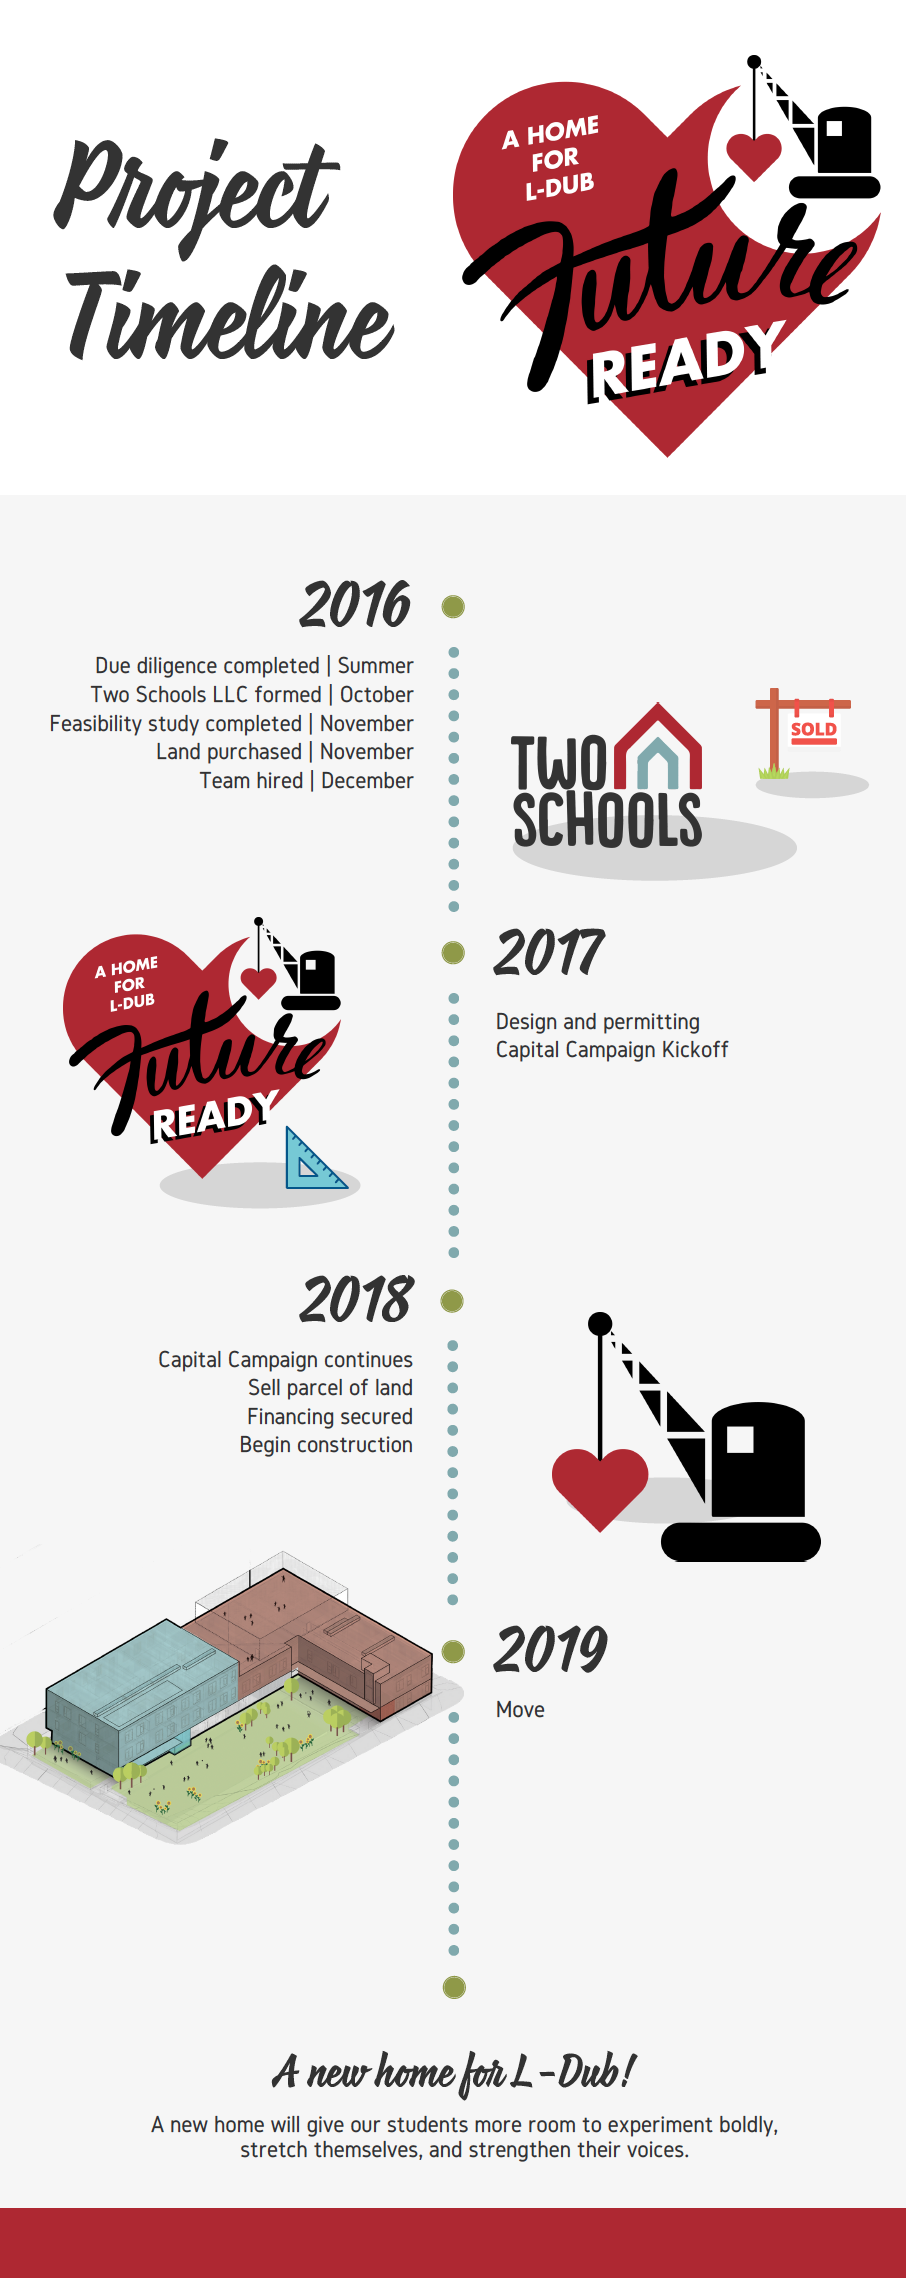 Future Ready Capital Campaign/Project Timeline